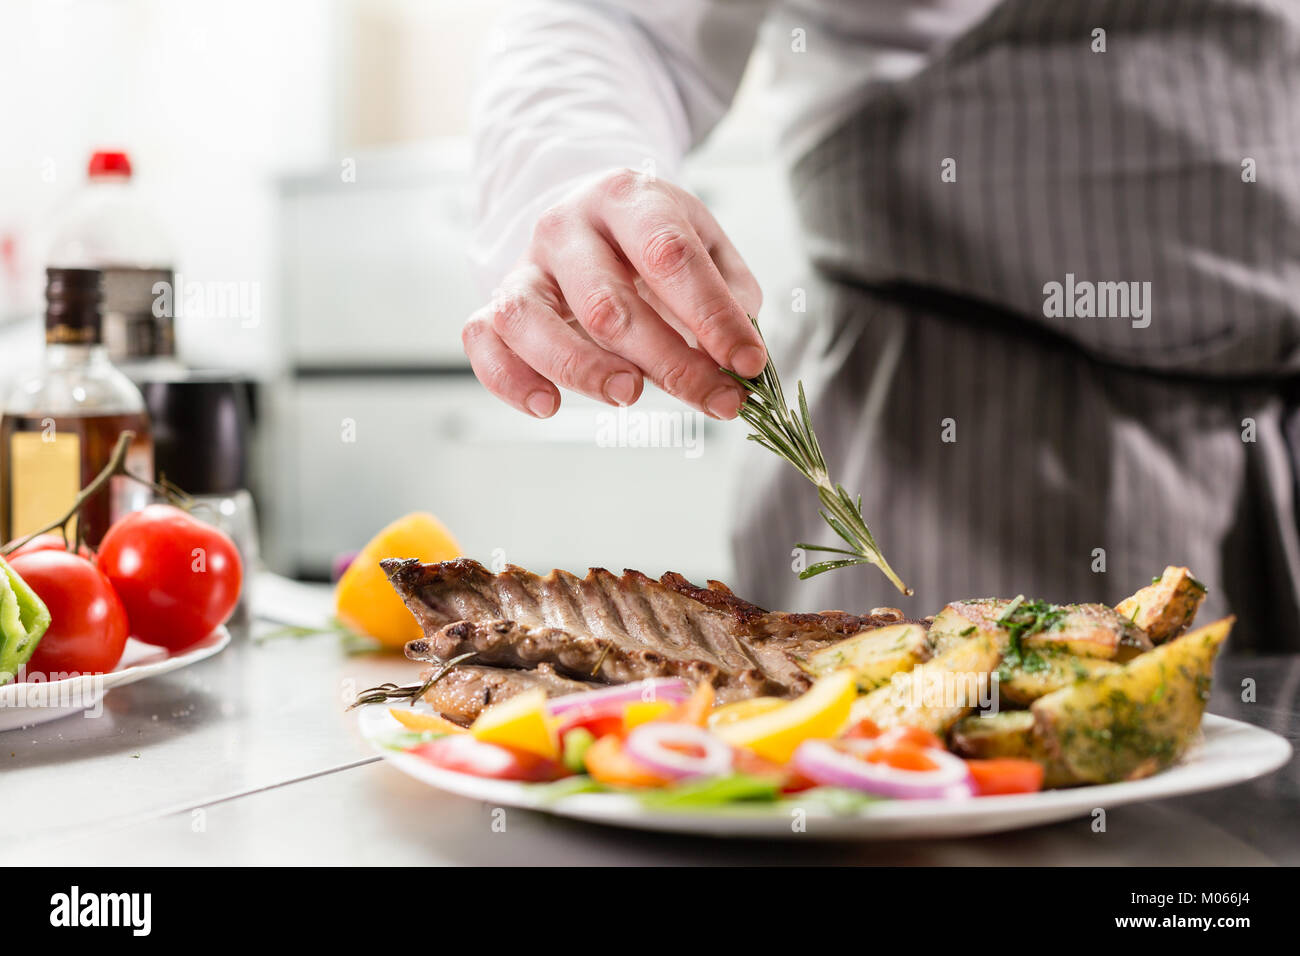 decorated with a sprig of rosemary. the chef prepares in the restaurant. Grilled rack of lamb with fried potatoes - Stock Image